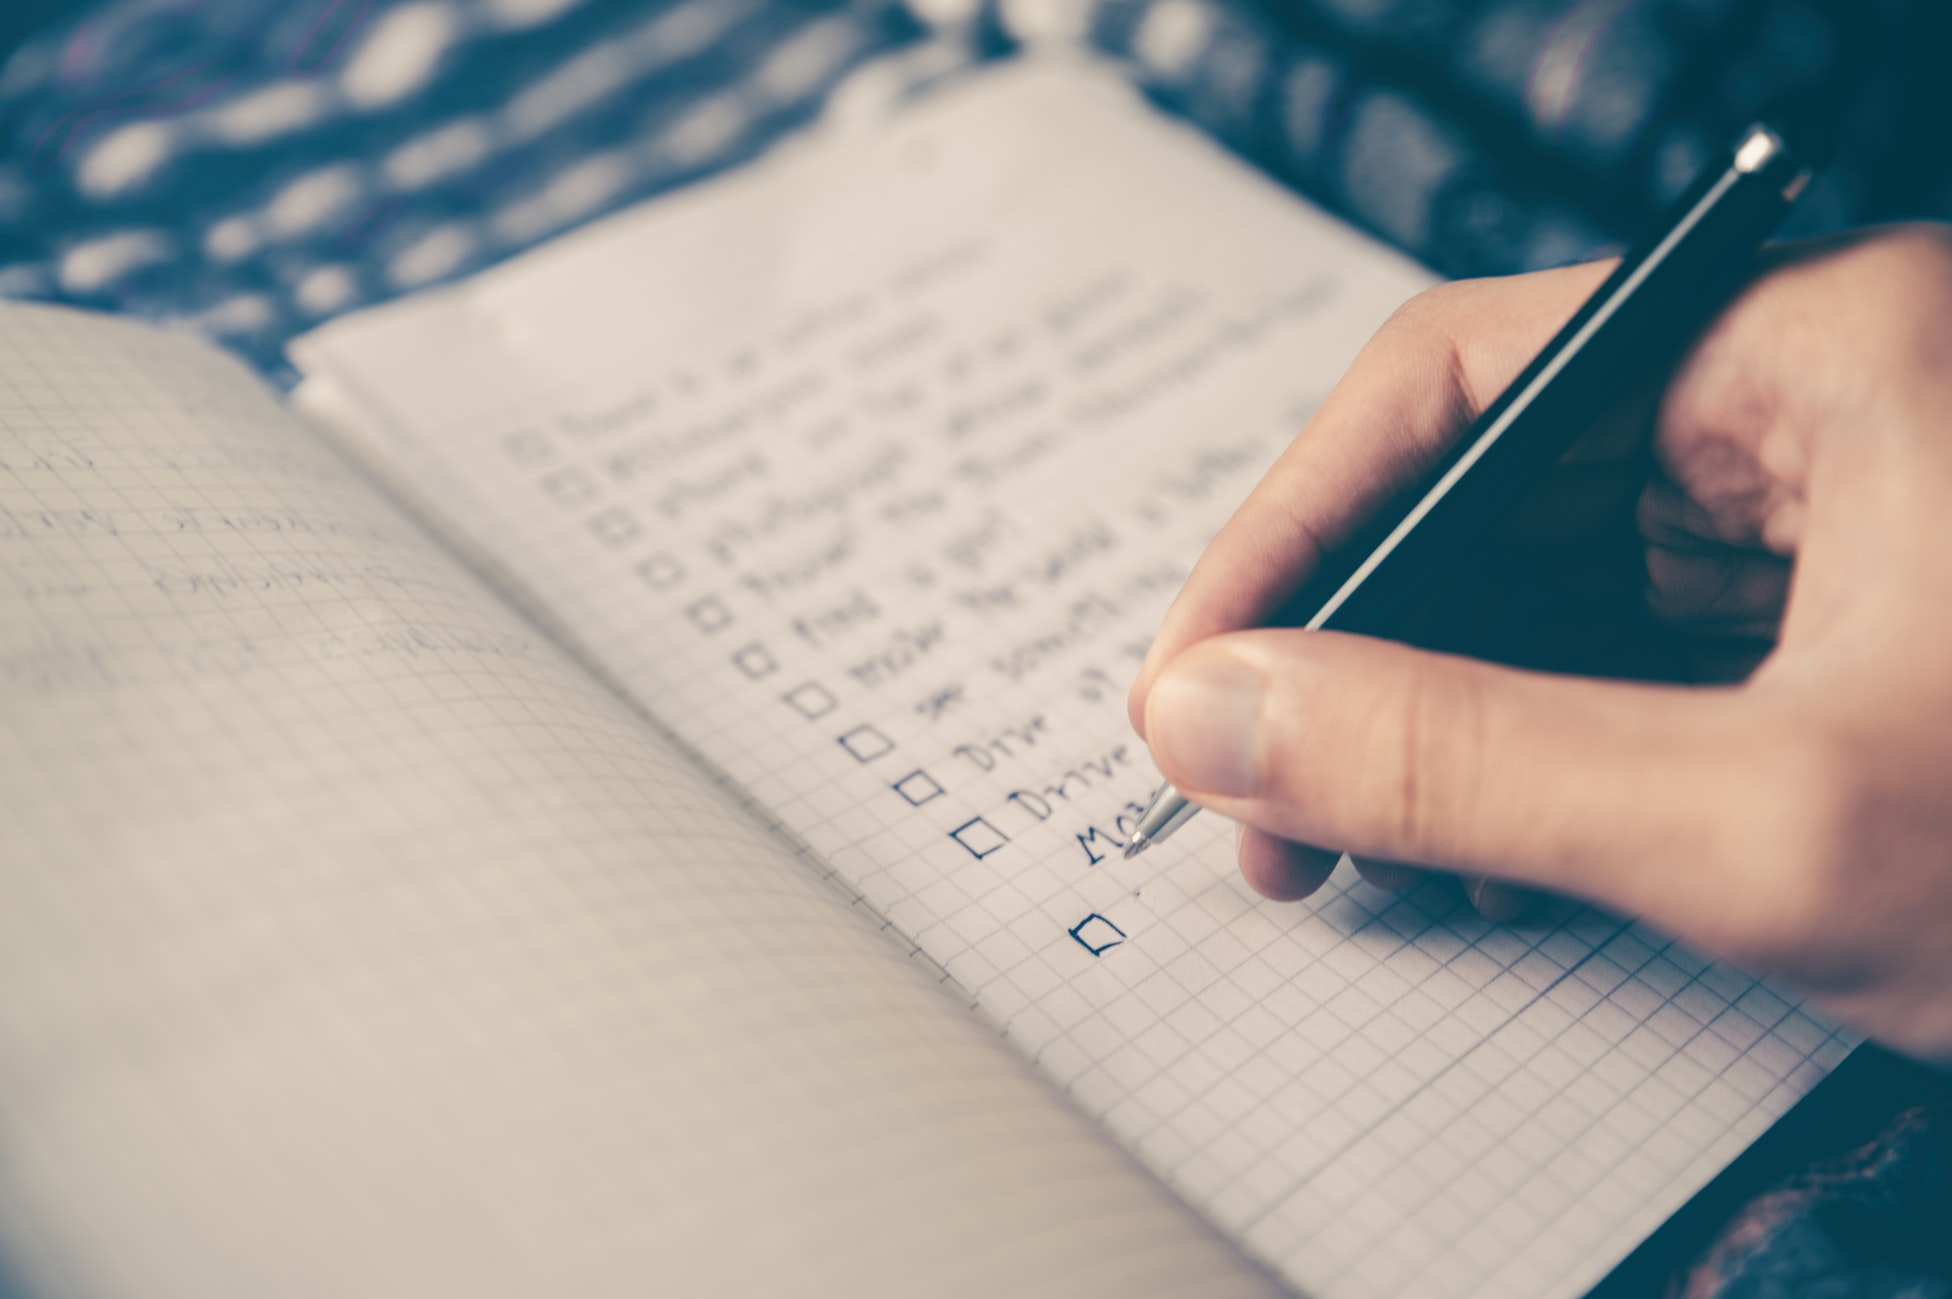 Person making a checklist in a journal